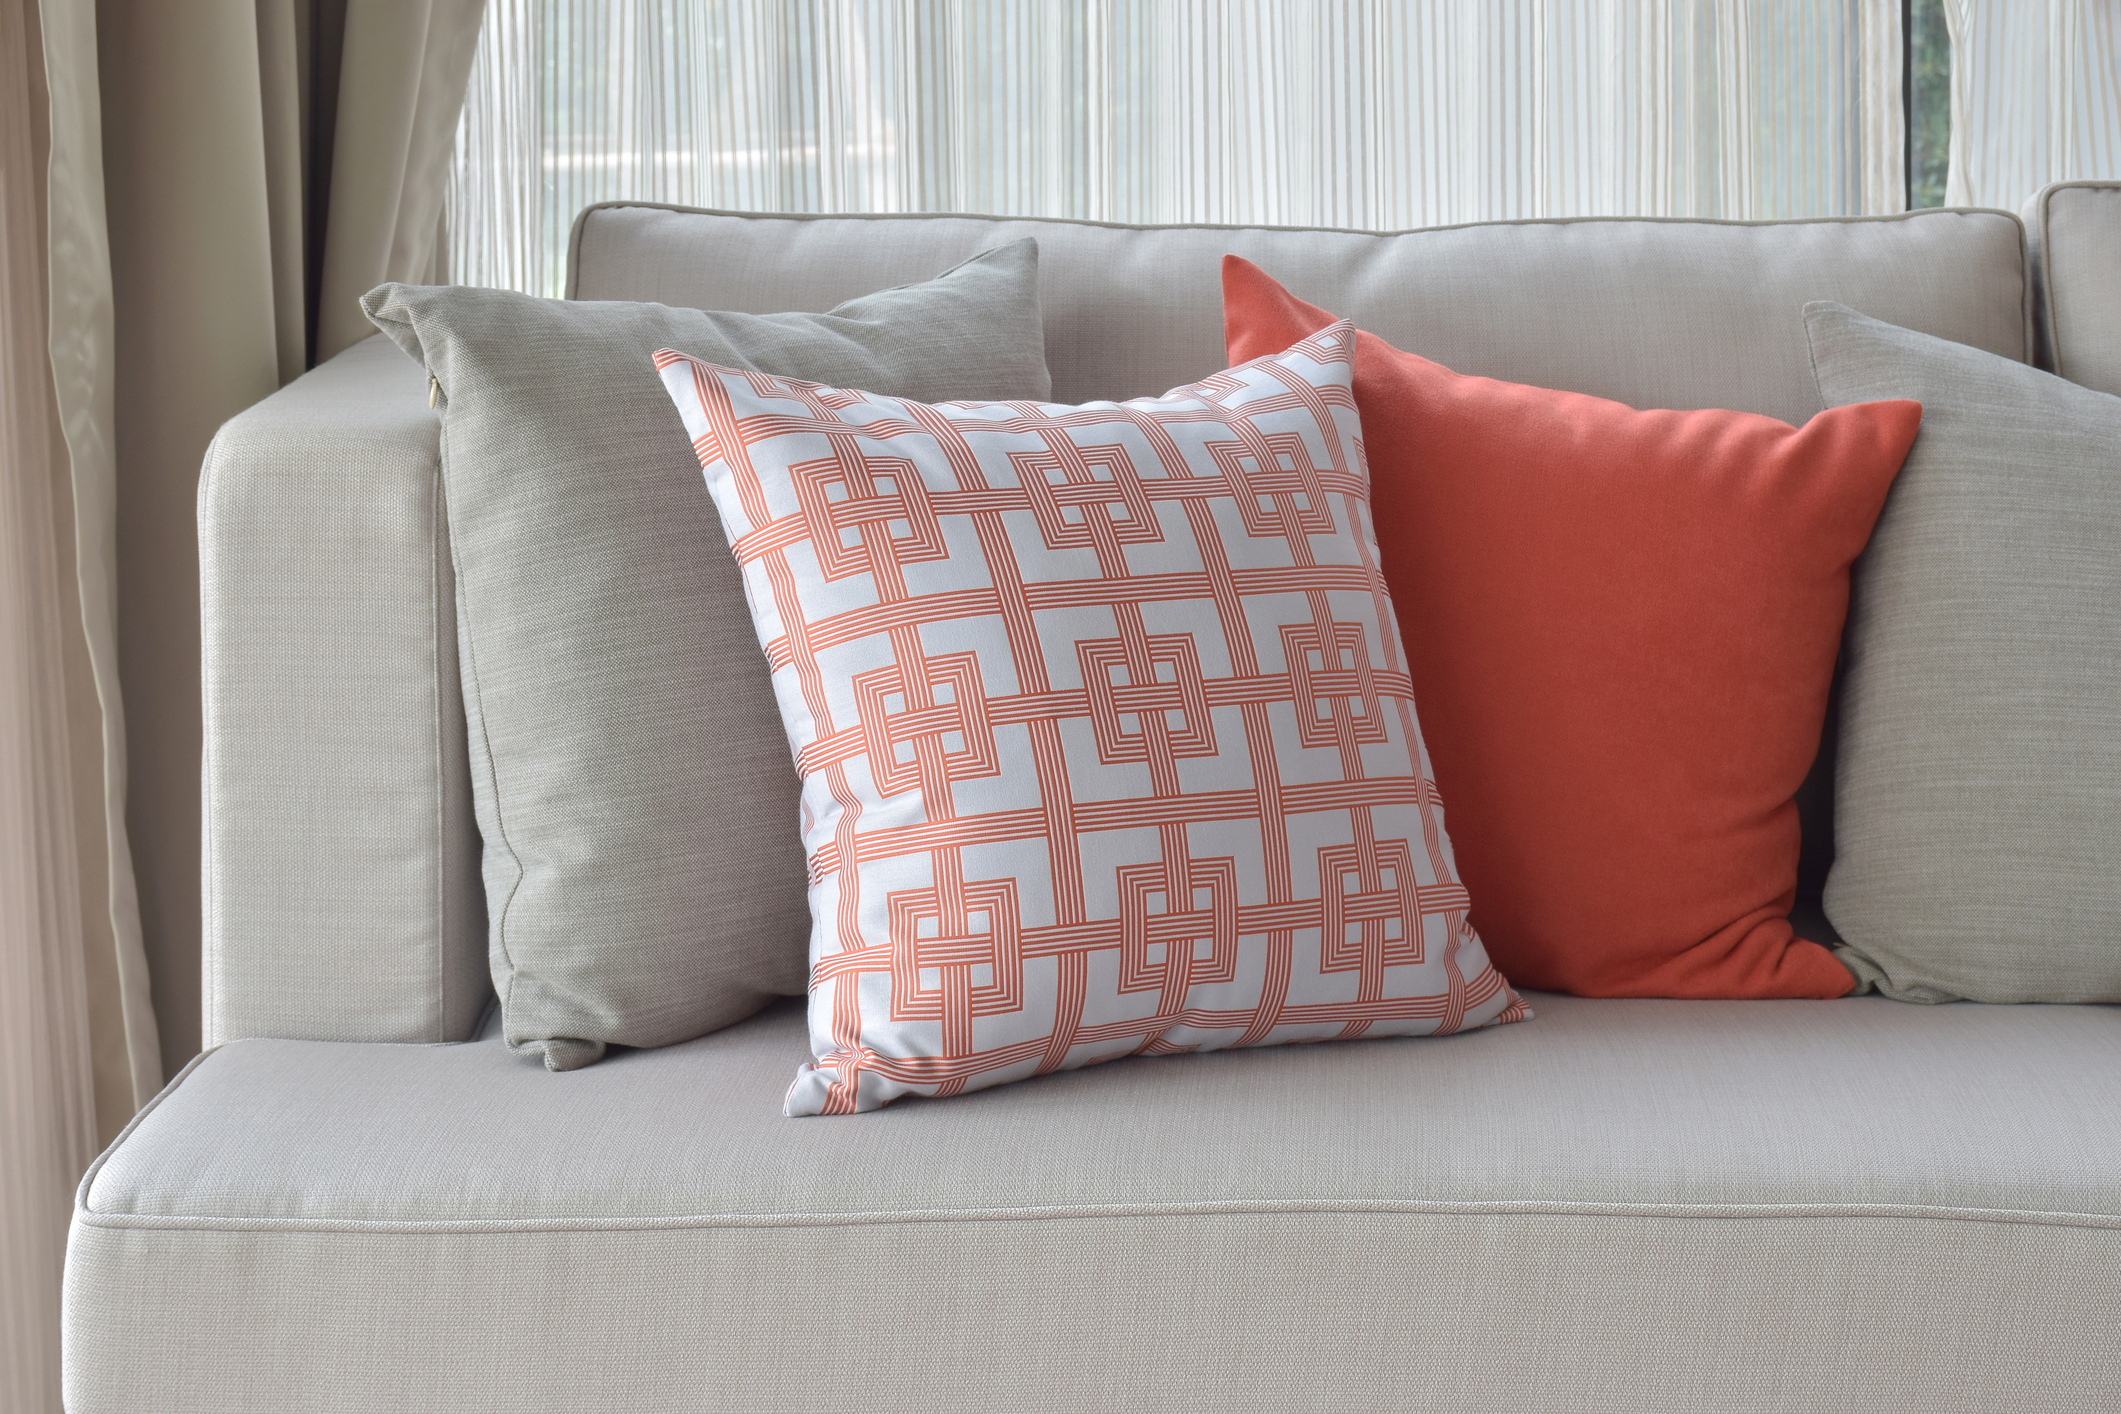 Clean gray couch and orange pillows cleaned by Columbia Carpet Cleaning